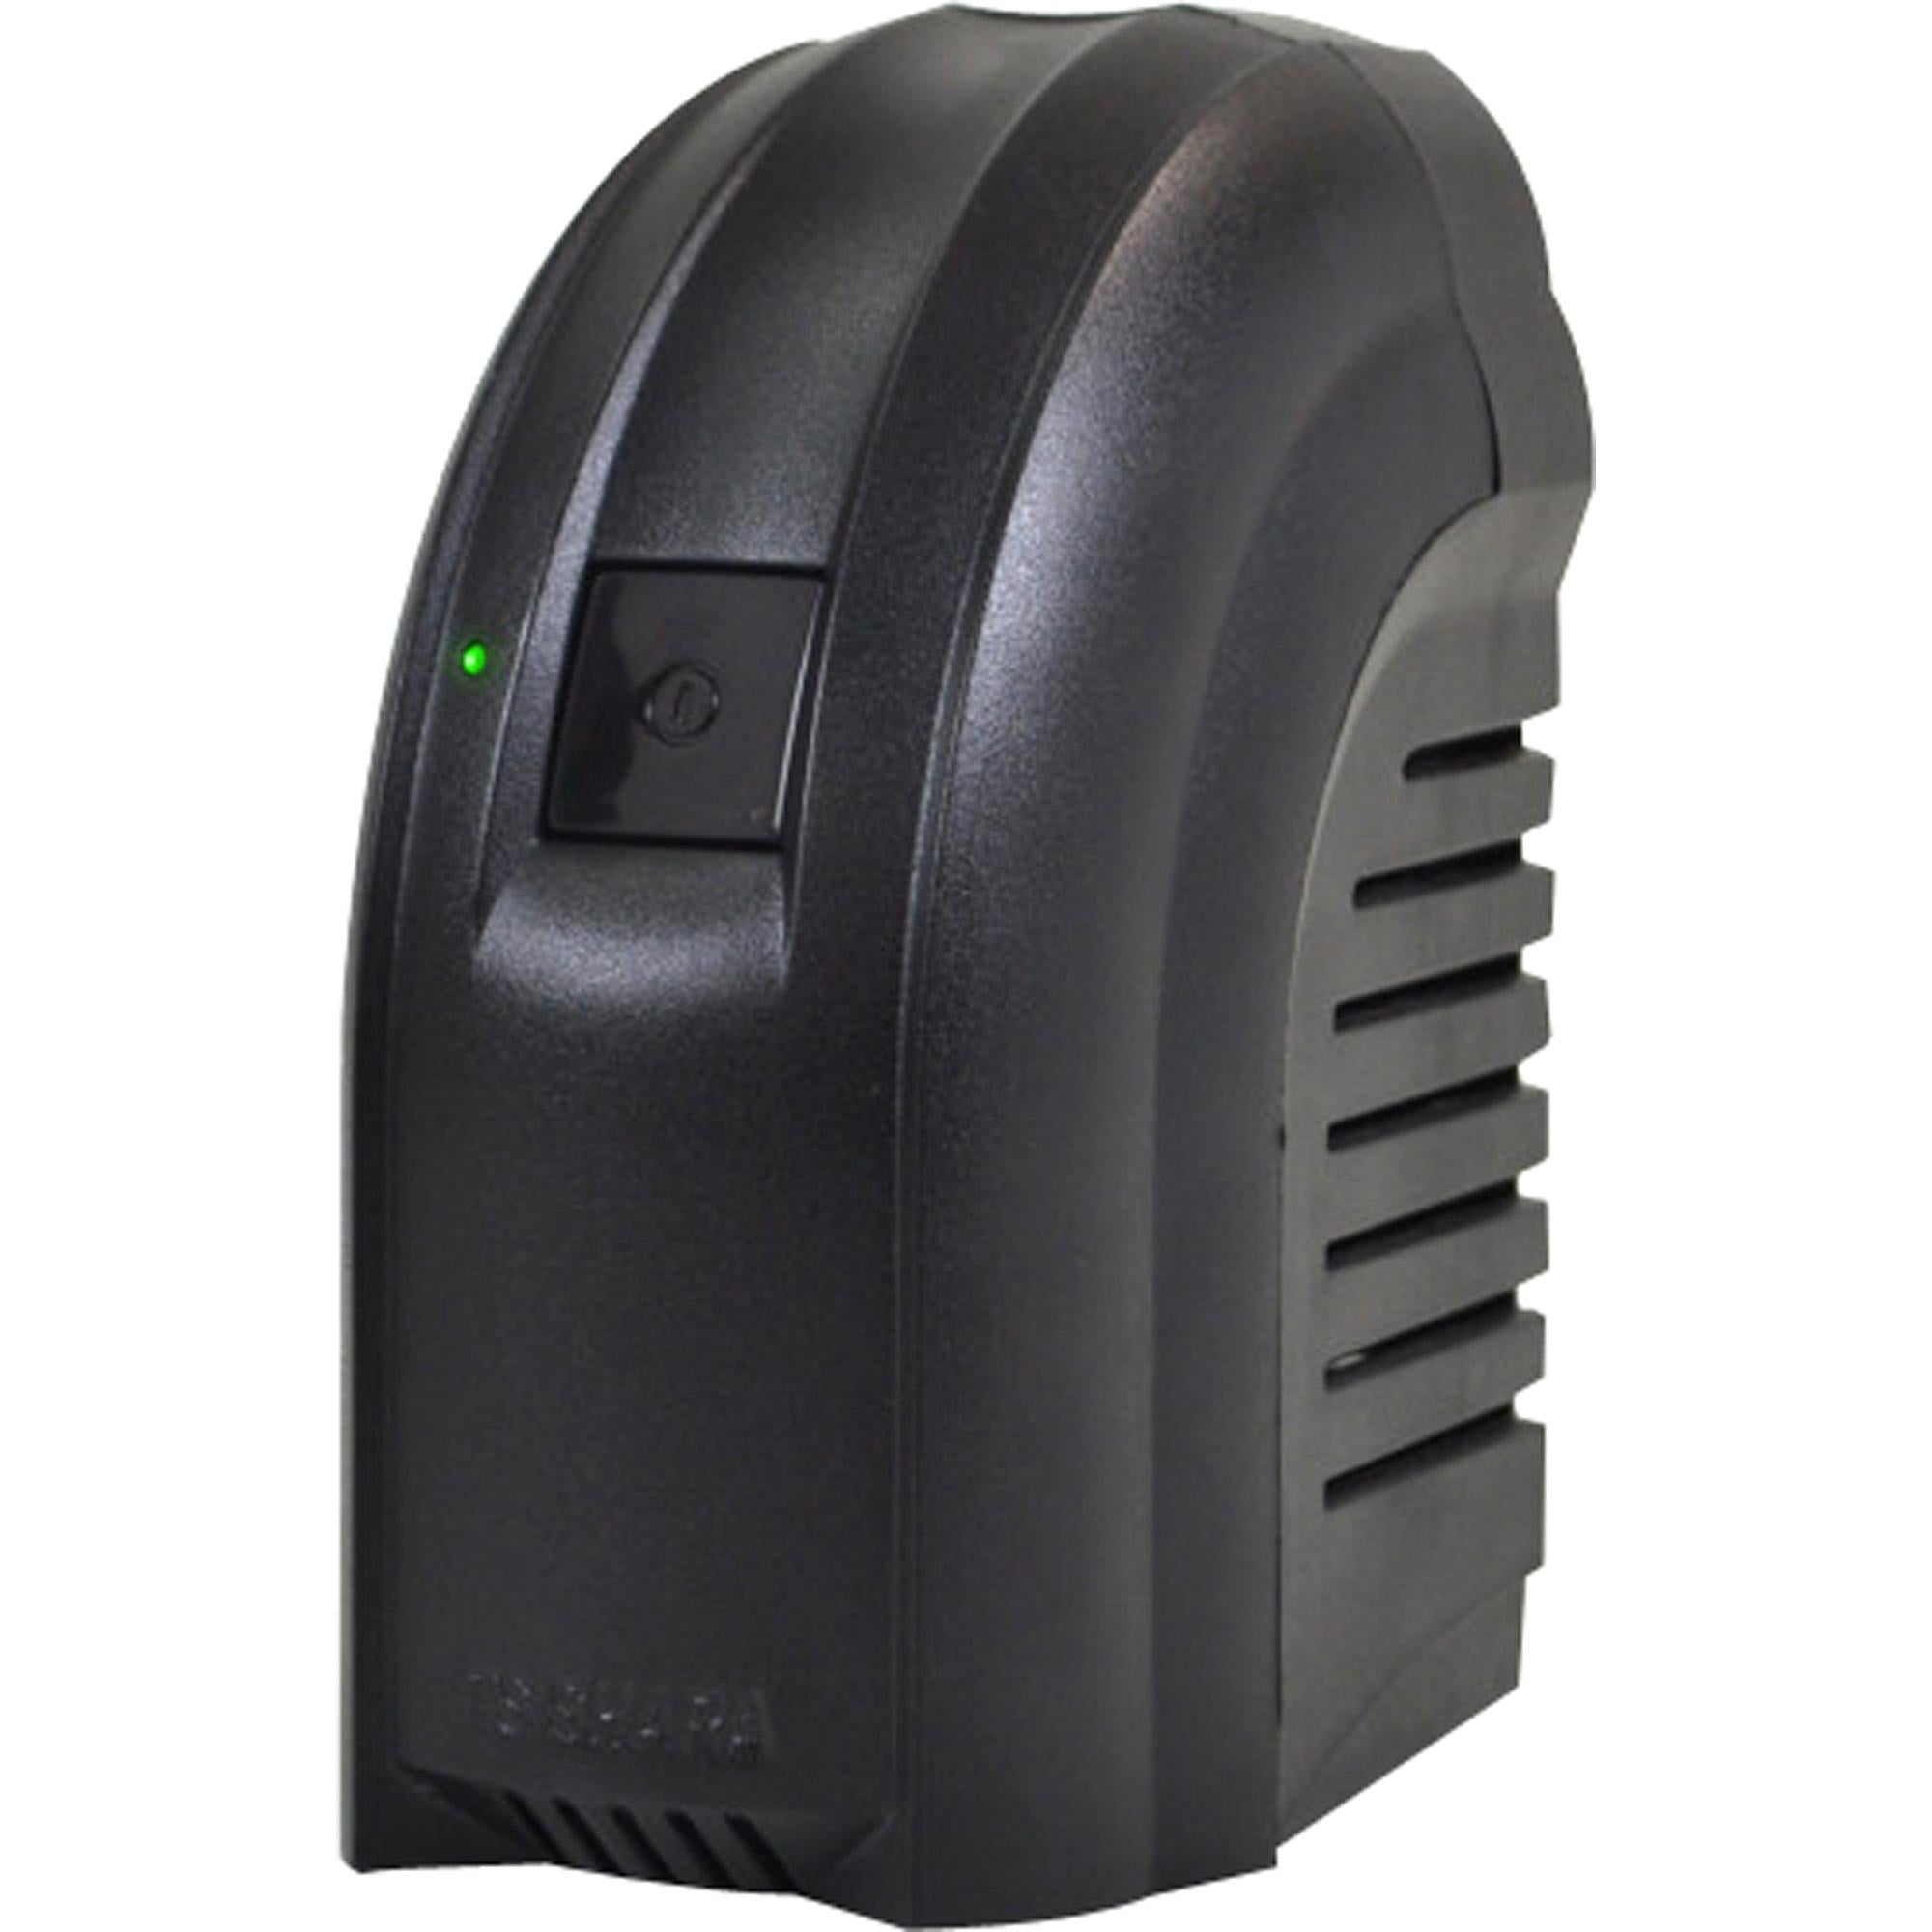 Estabilizador 500VA POWEREST Bivolt Preto TS SHARA - MagazineInnovar